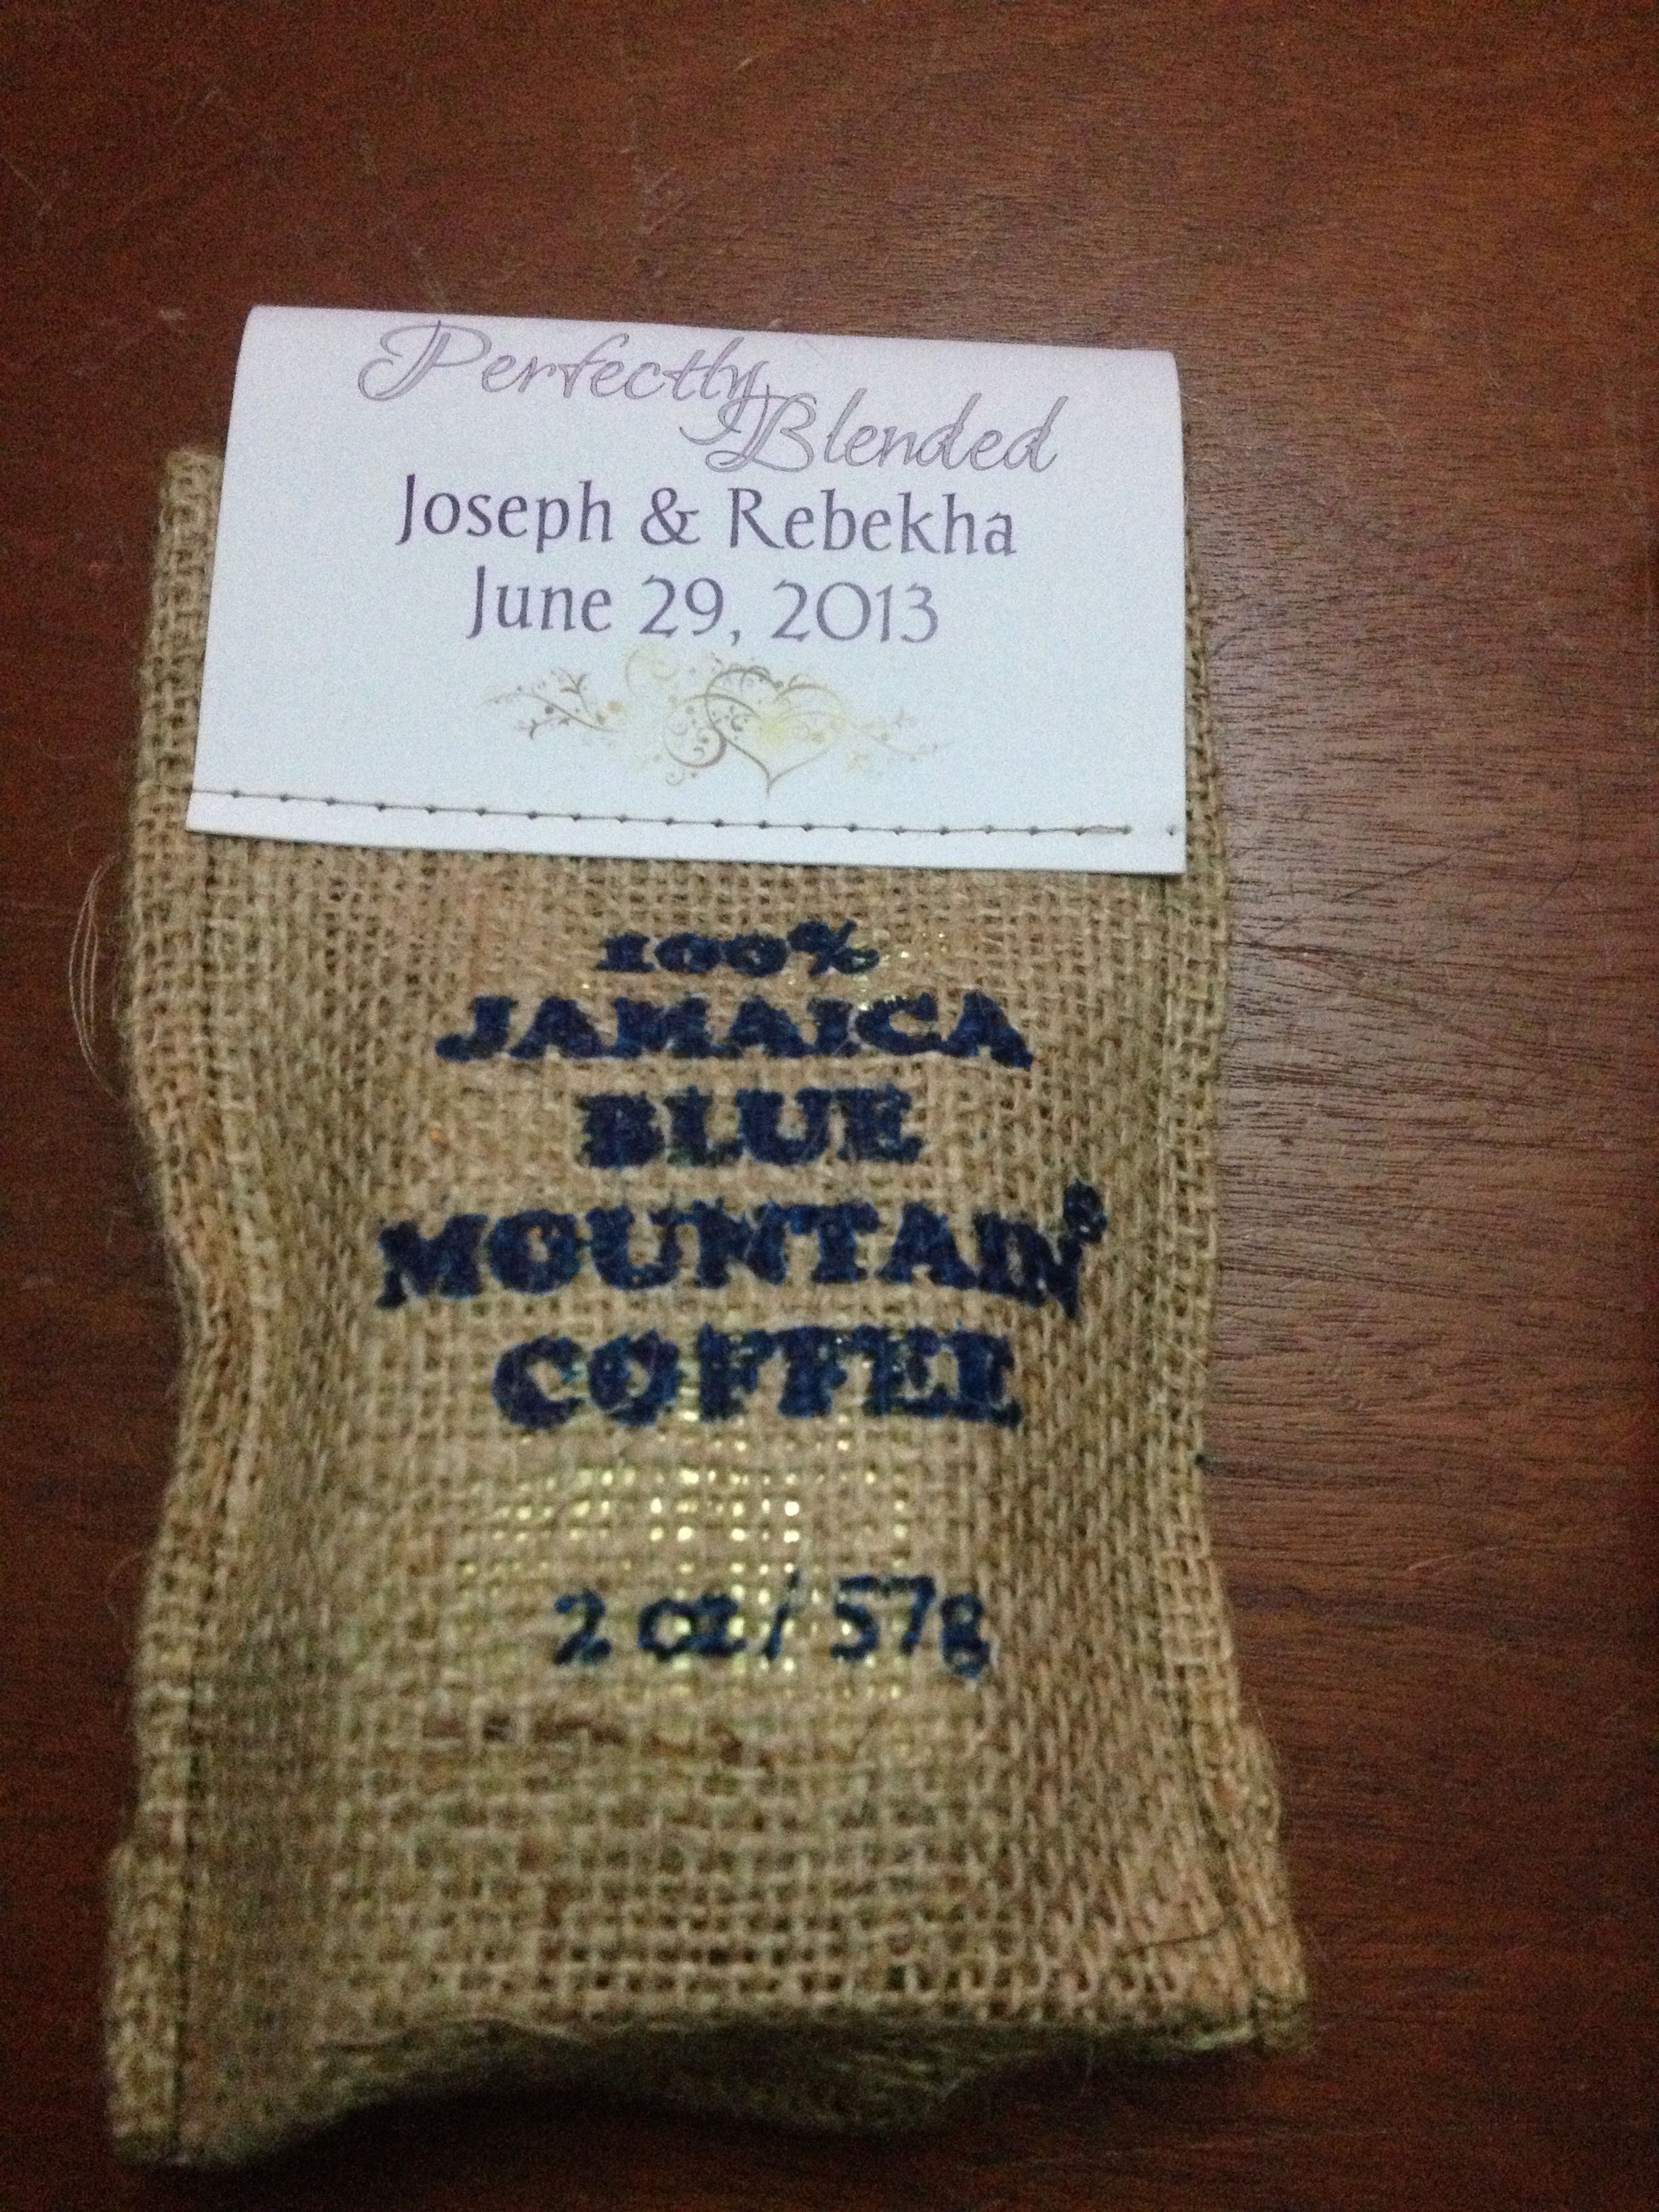 Personalized Jamaican Blue Mountain Coffee In Burlap Bag For Your Wedding Favor